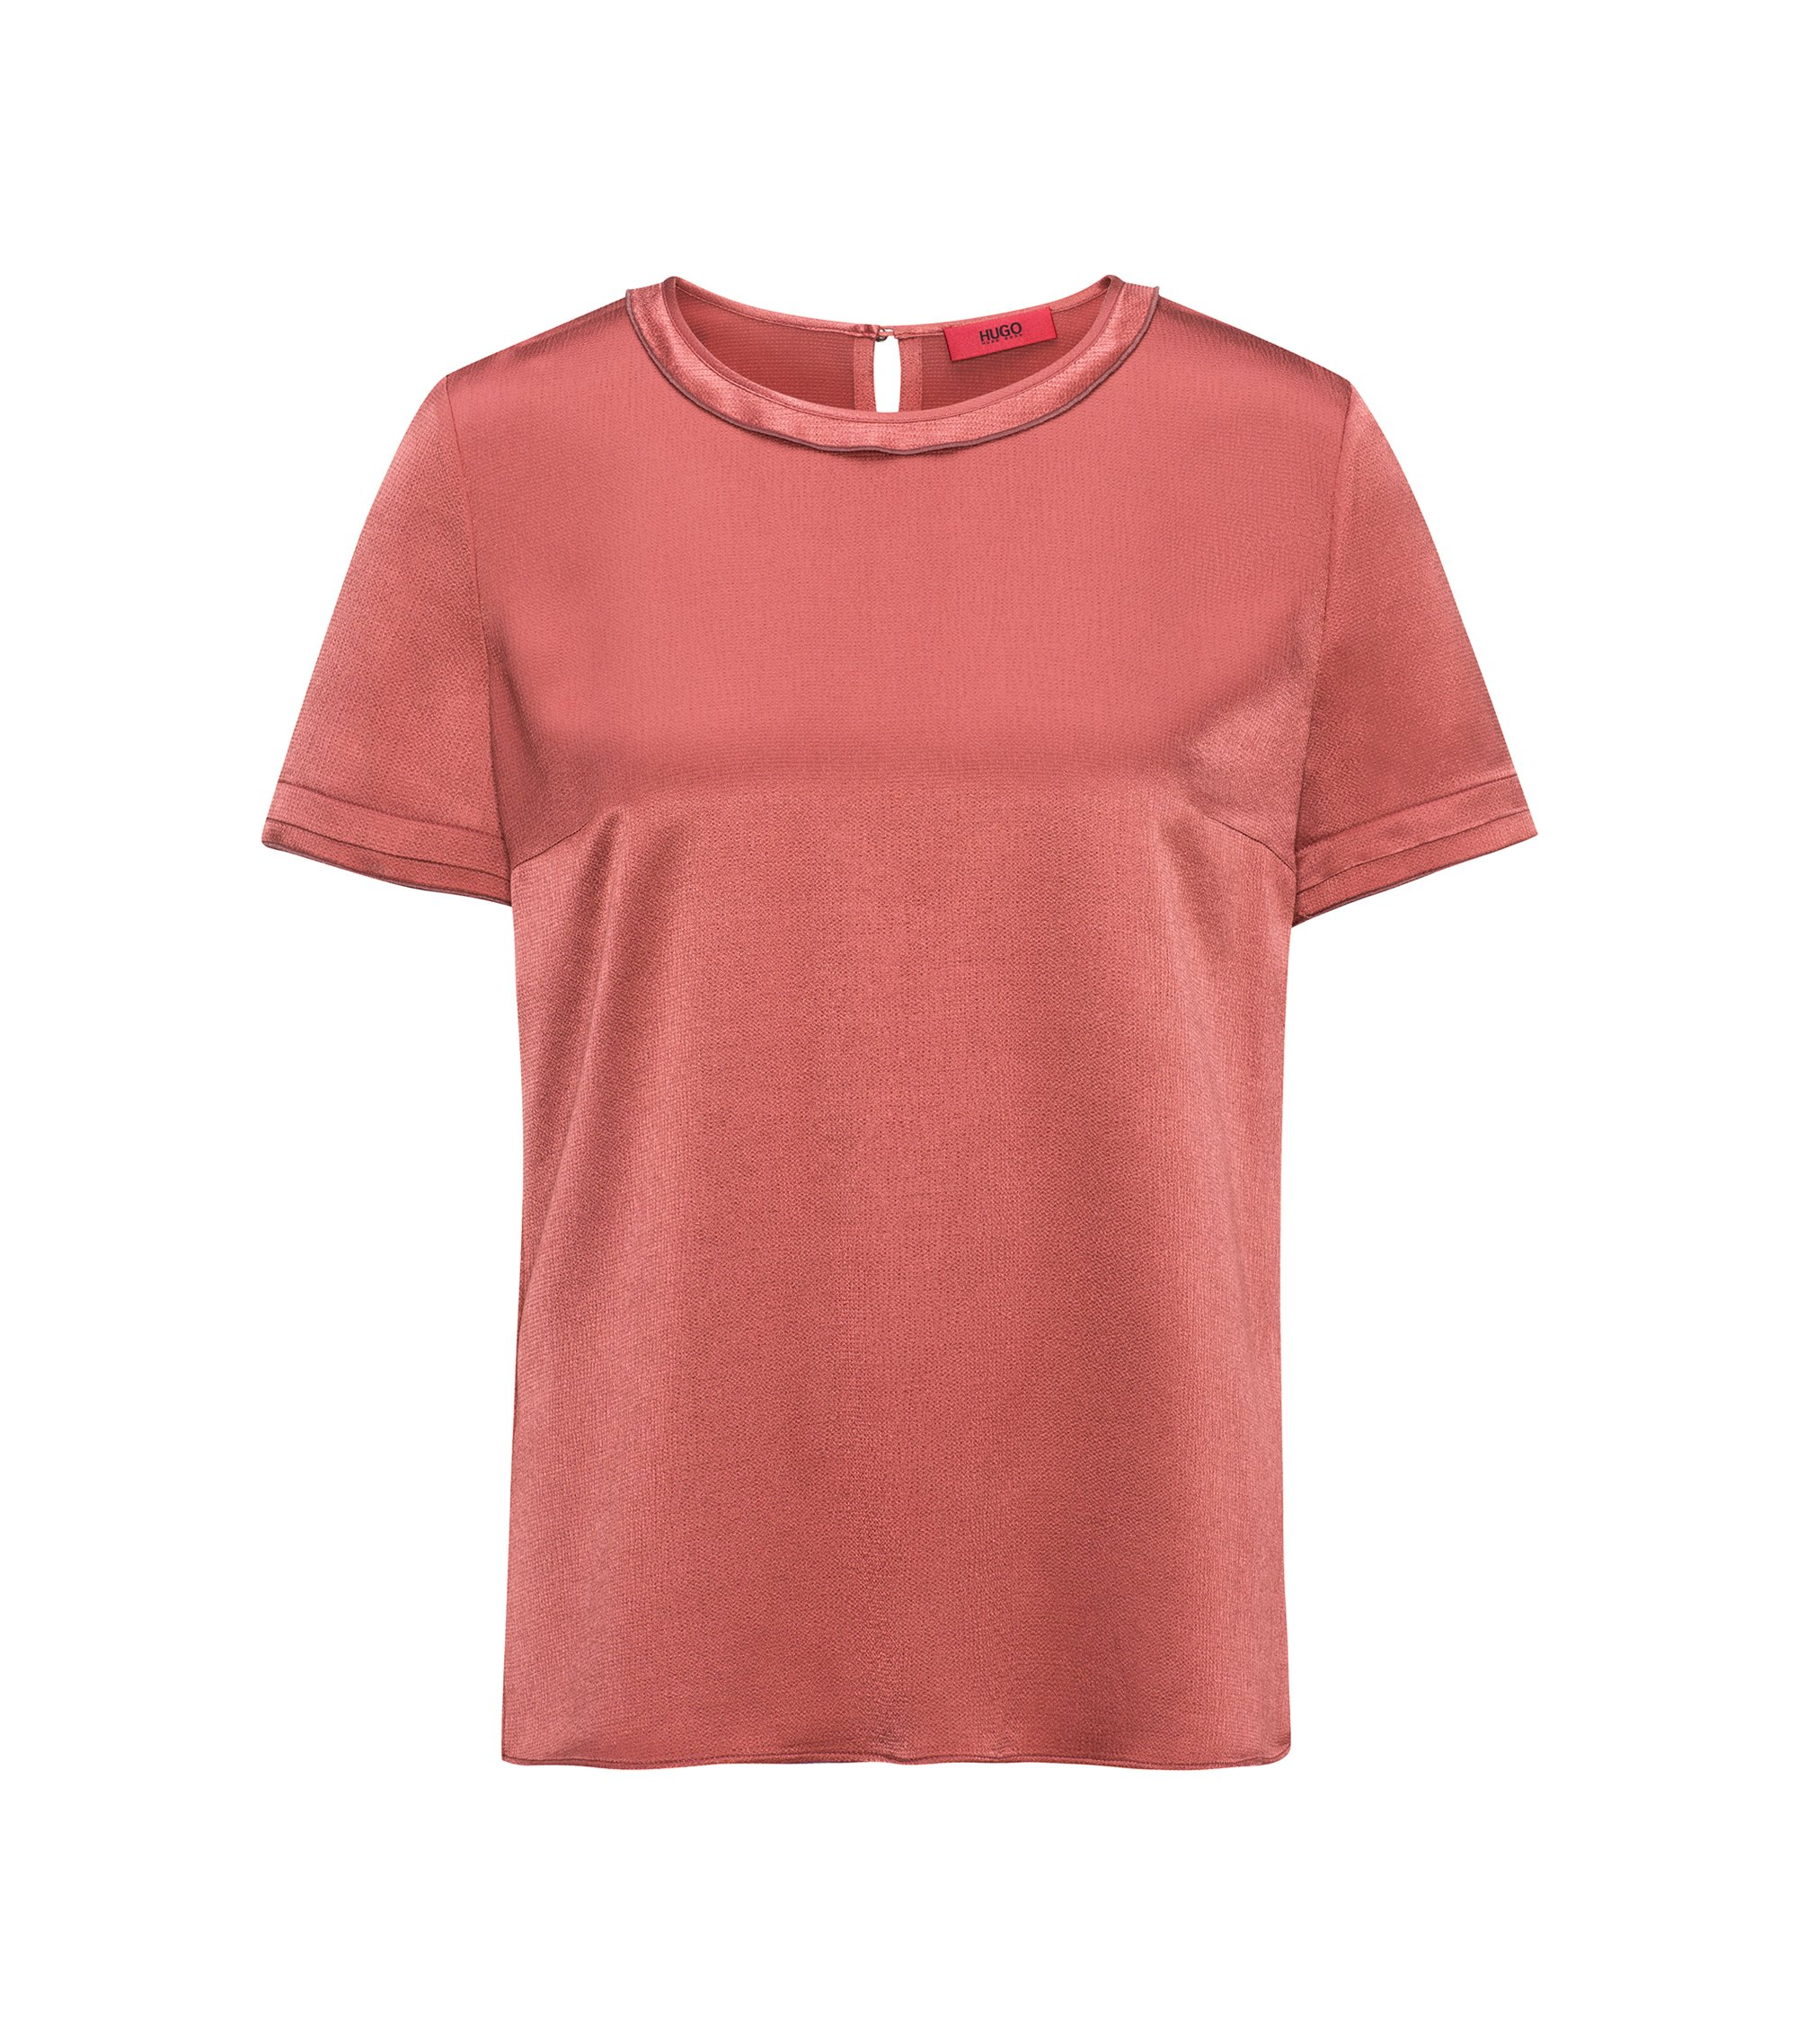 Regular-fit T-shirt top in silky fabric, Pink